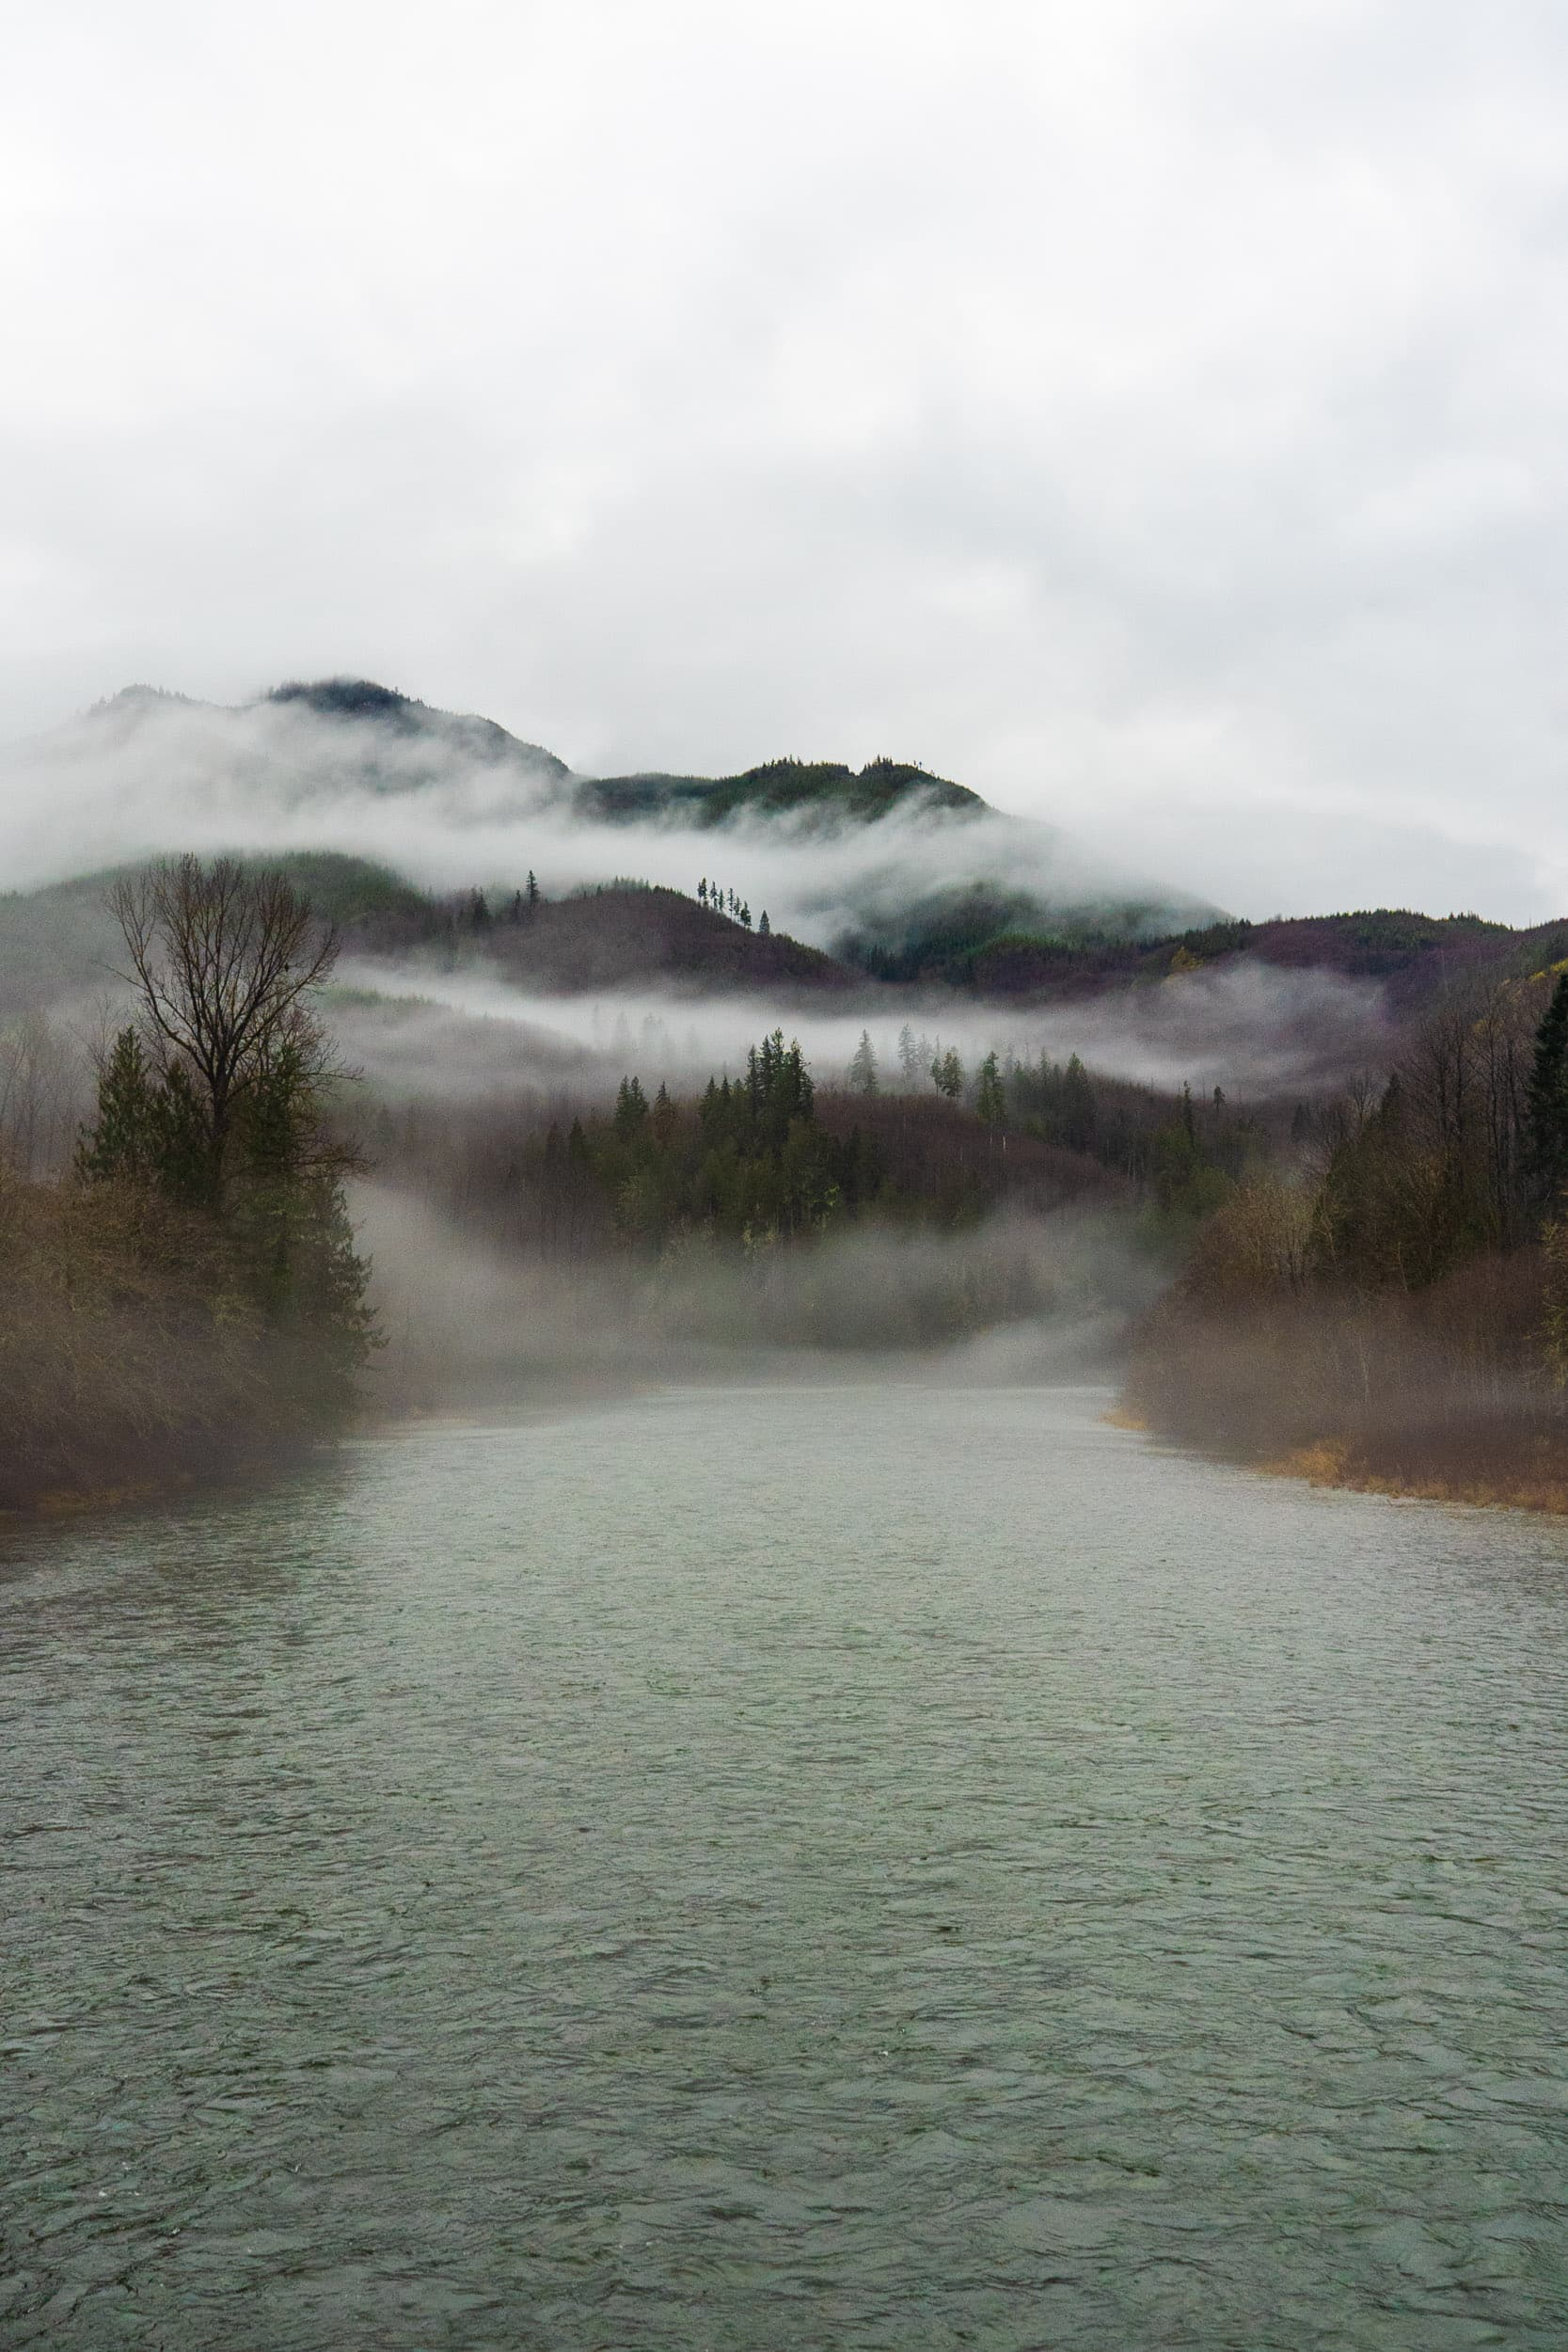 The Skagit River. Photo: Fernando Lessa / The Narwhal